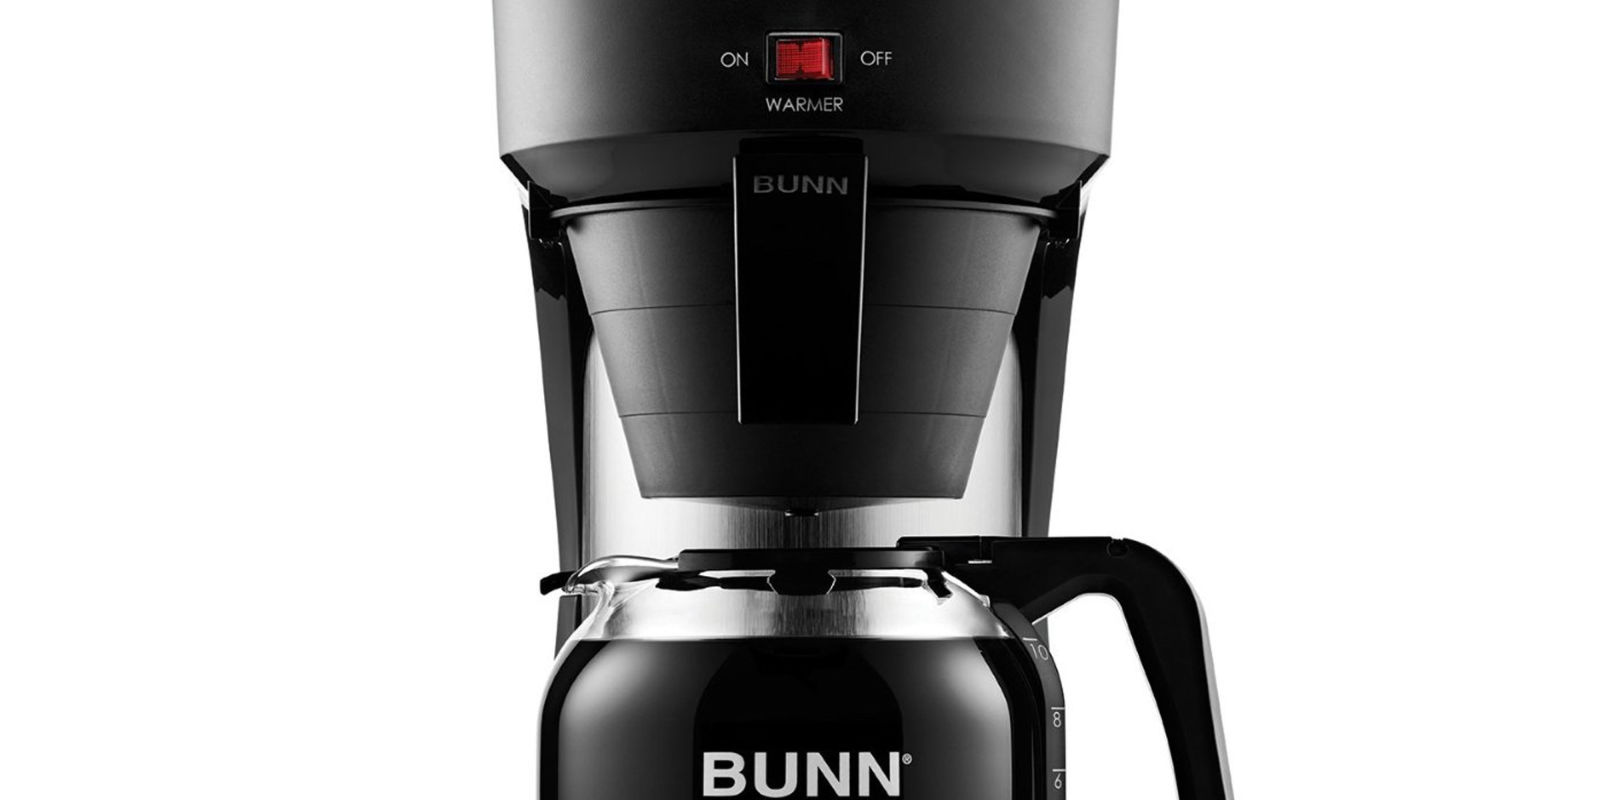 Good Housekeeping Coffee Maker Ratings : Bunn Speed Brew Coffeemaker Review, Price and Features